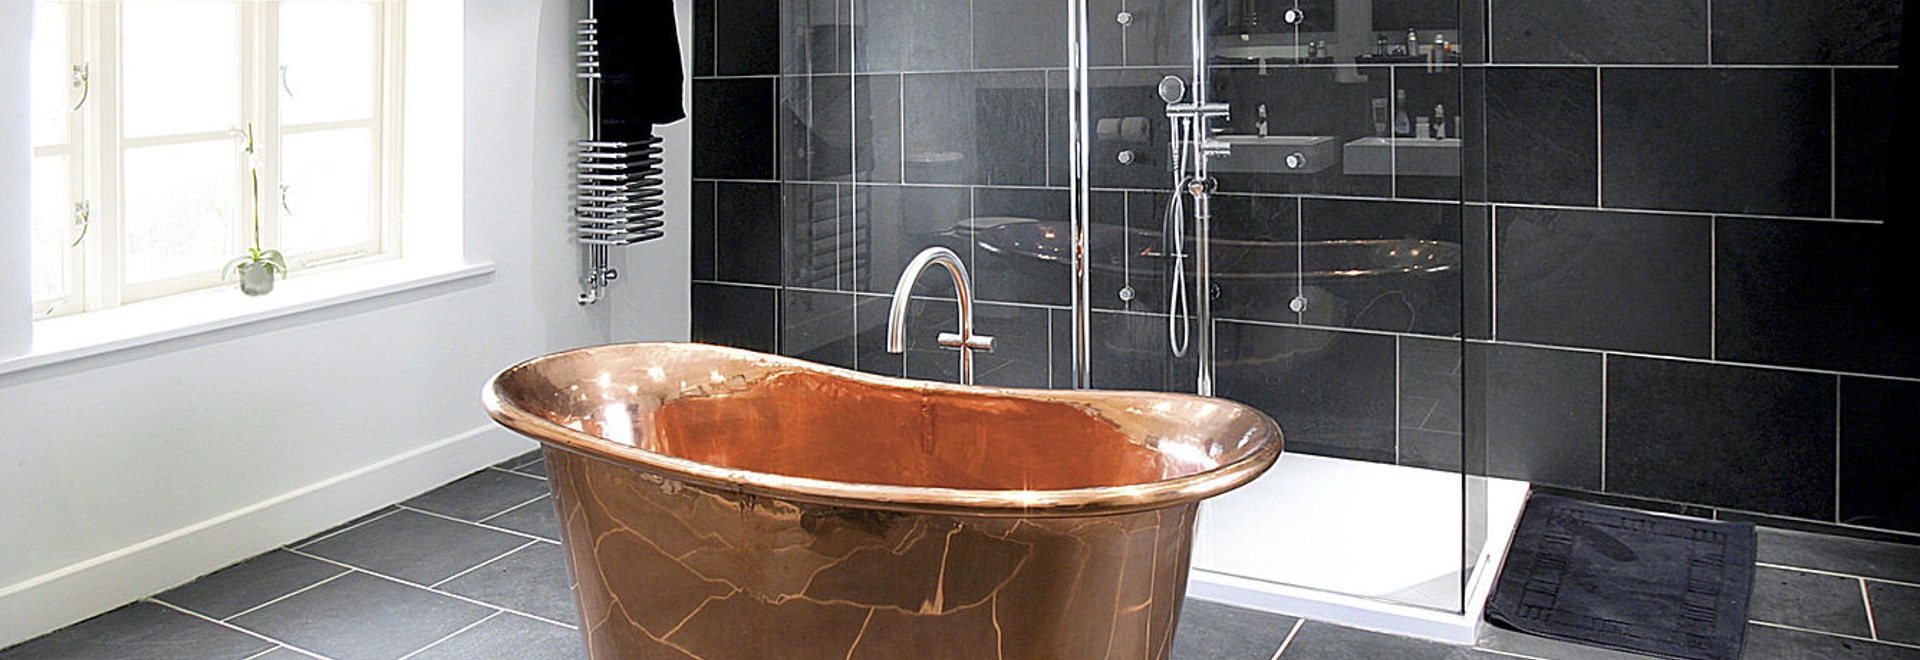 Gorgeous new copper tubs & washbasins collection at BLEU PROVENCE!